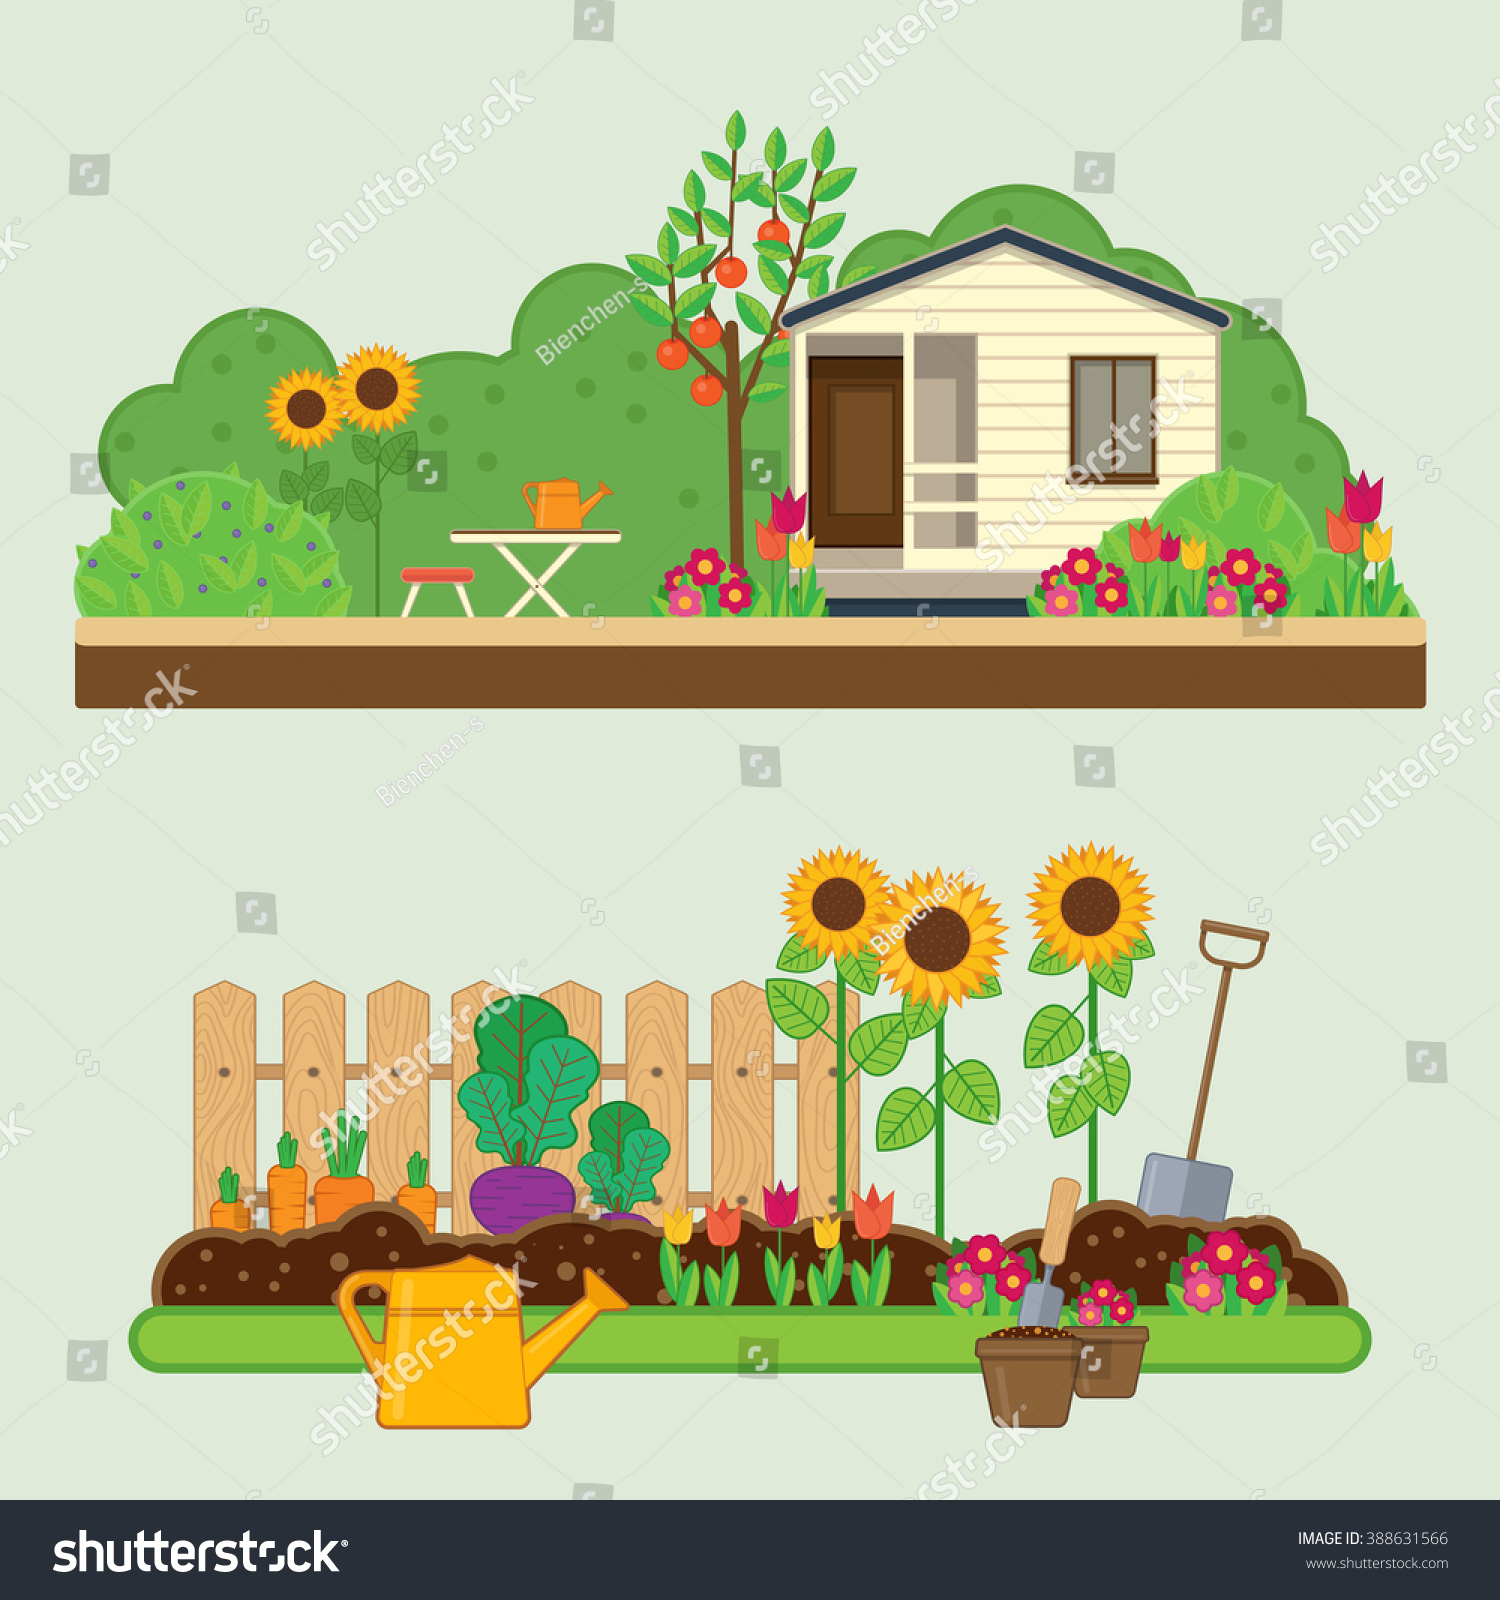 Vector Illustrations With Rural Landscape, Flowers, Garden, Cottage And  Garden